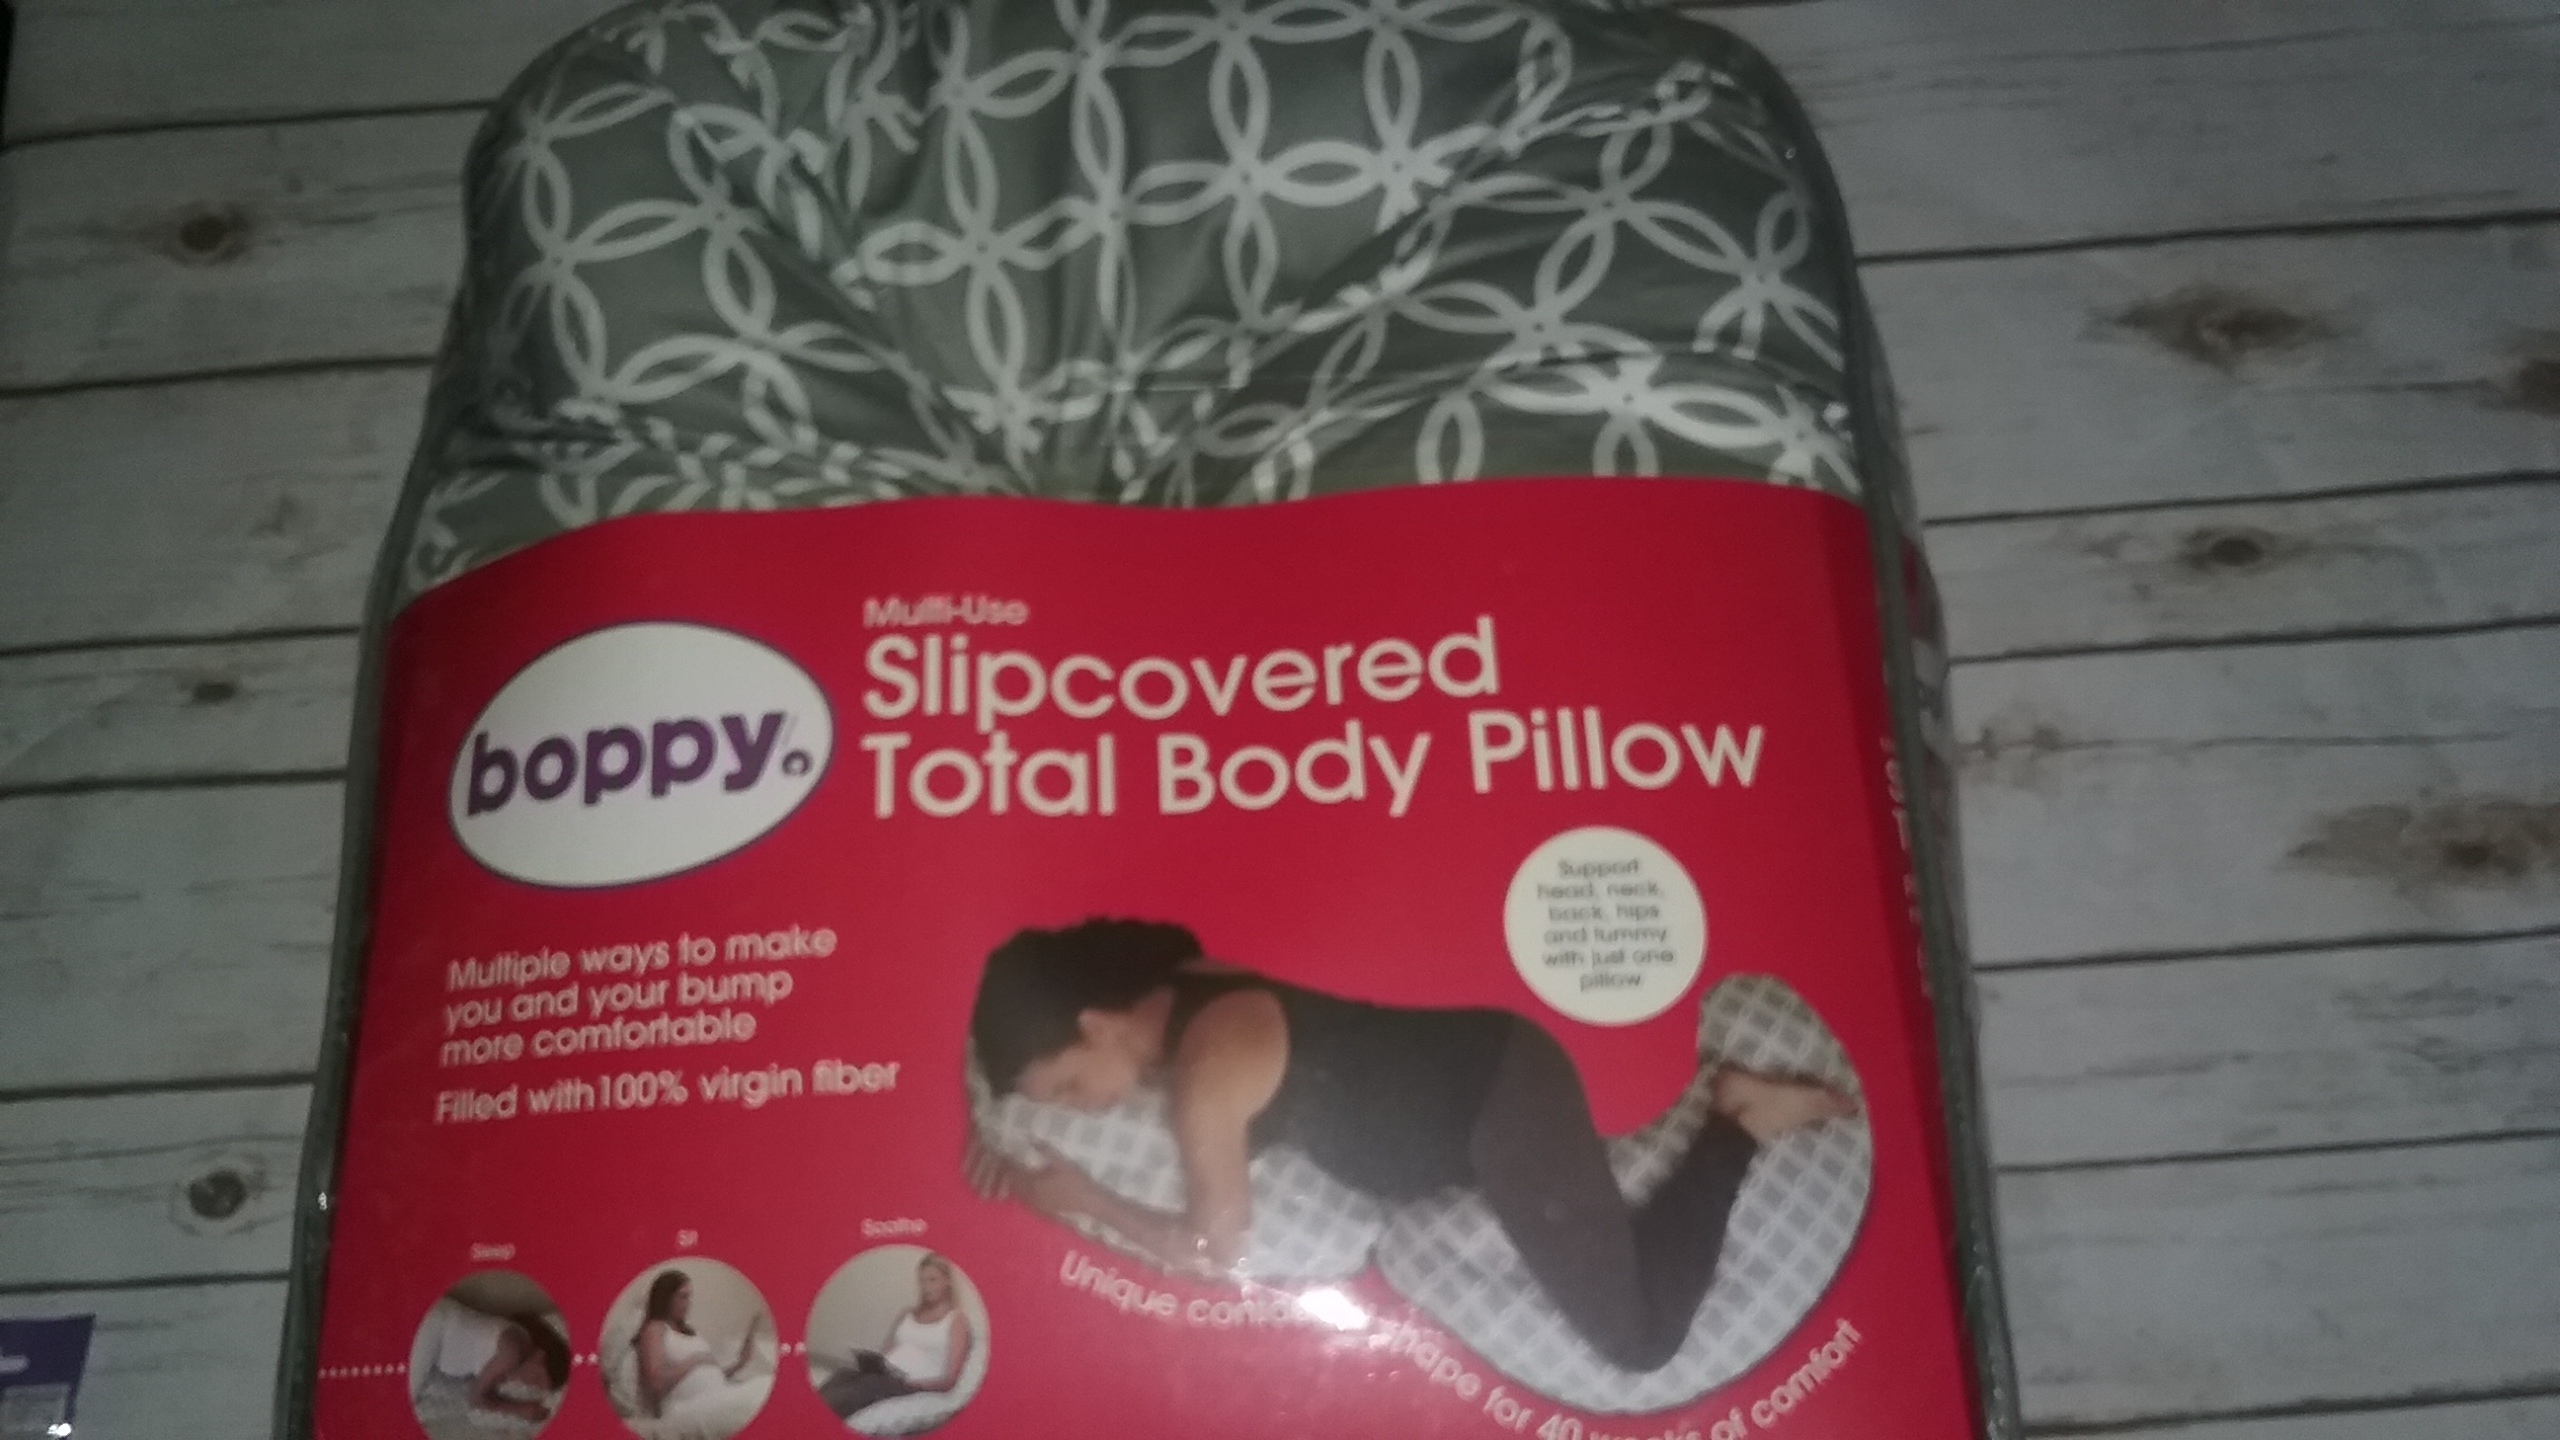 Boppy Com Slipcovered Total Body Pillow An Awesome Pregnancy Pillow